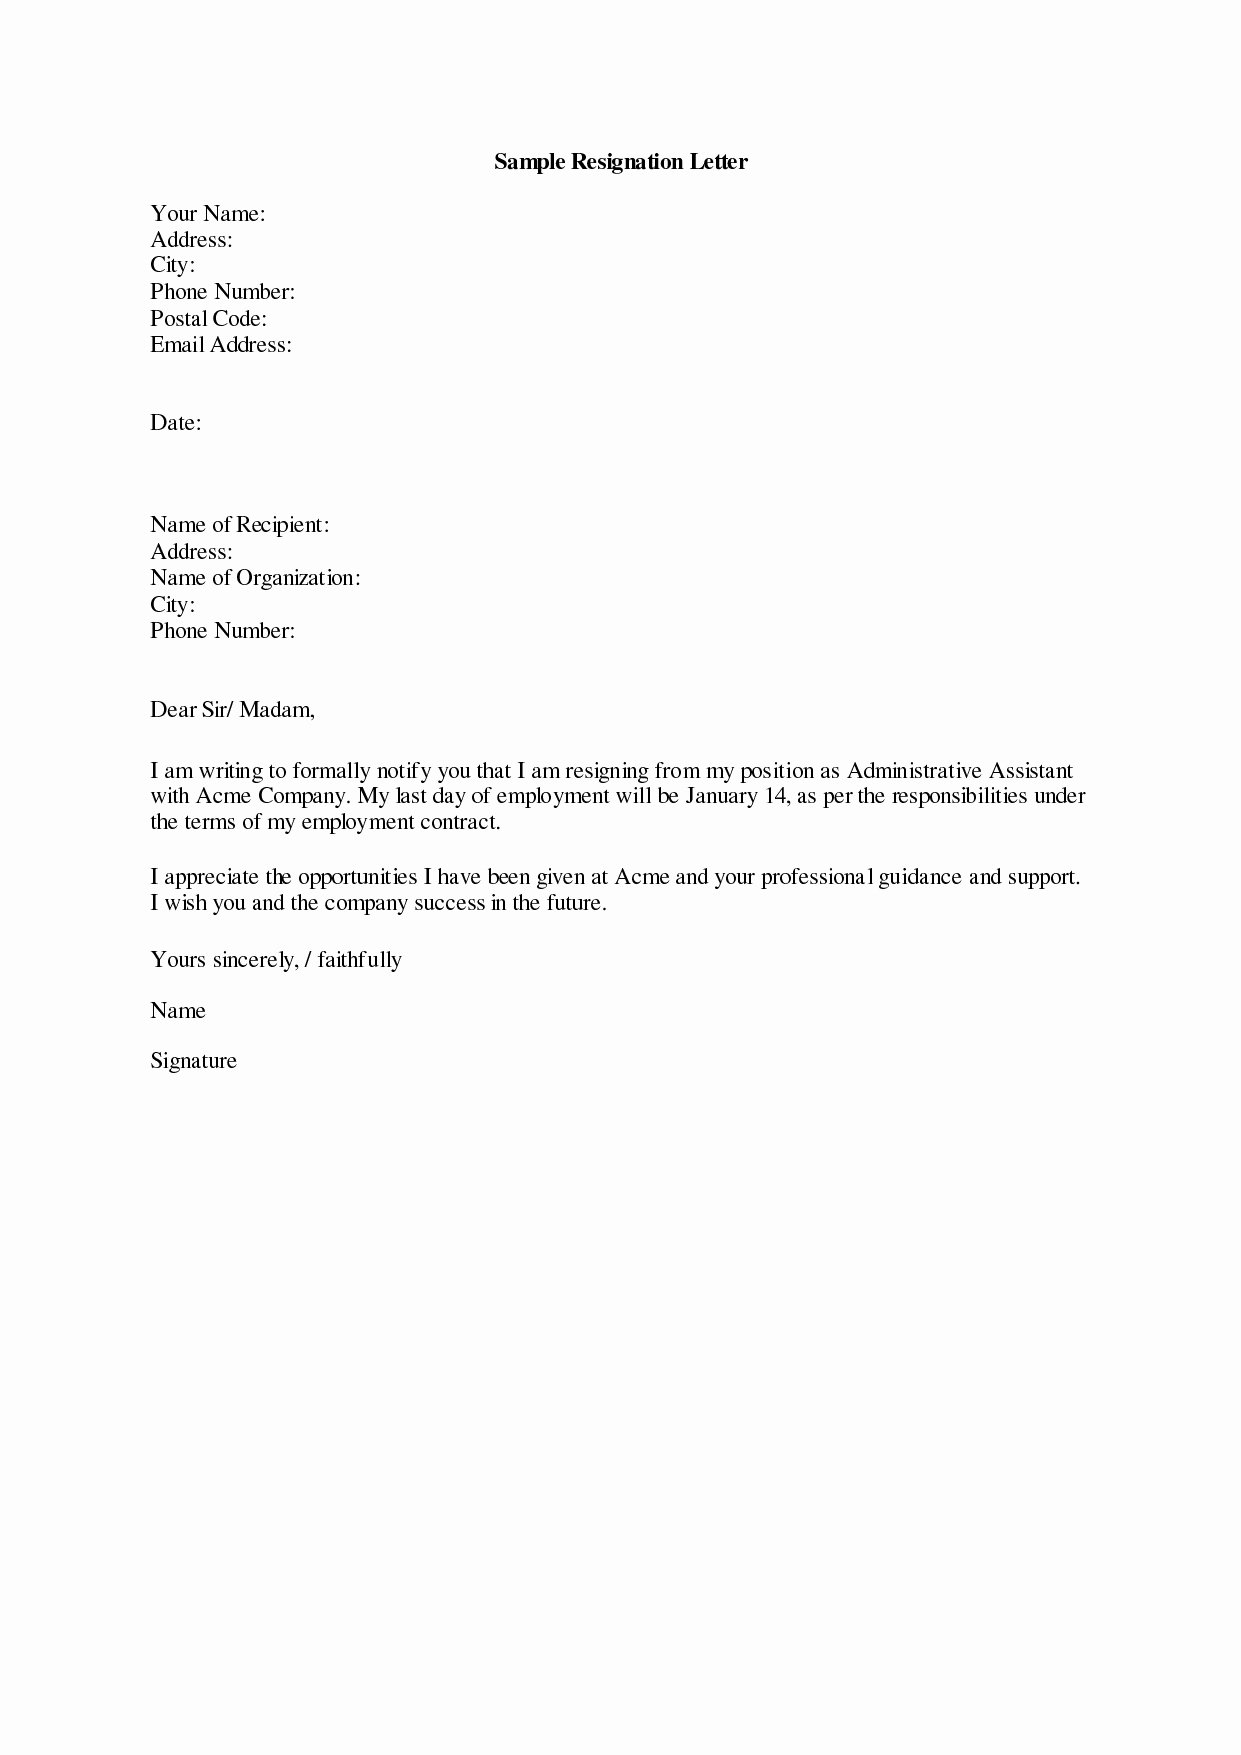 Resignation Letter 30 Days Notice Lovely assisted Living 30 Day Notice Letter Template Sample